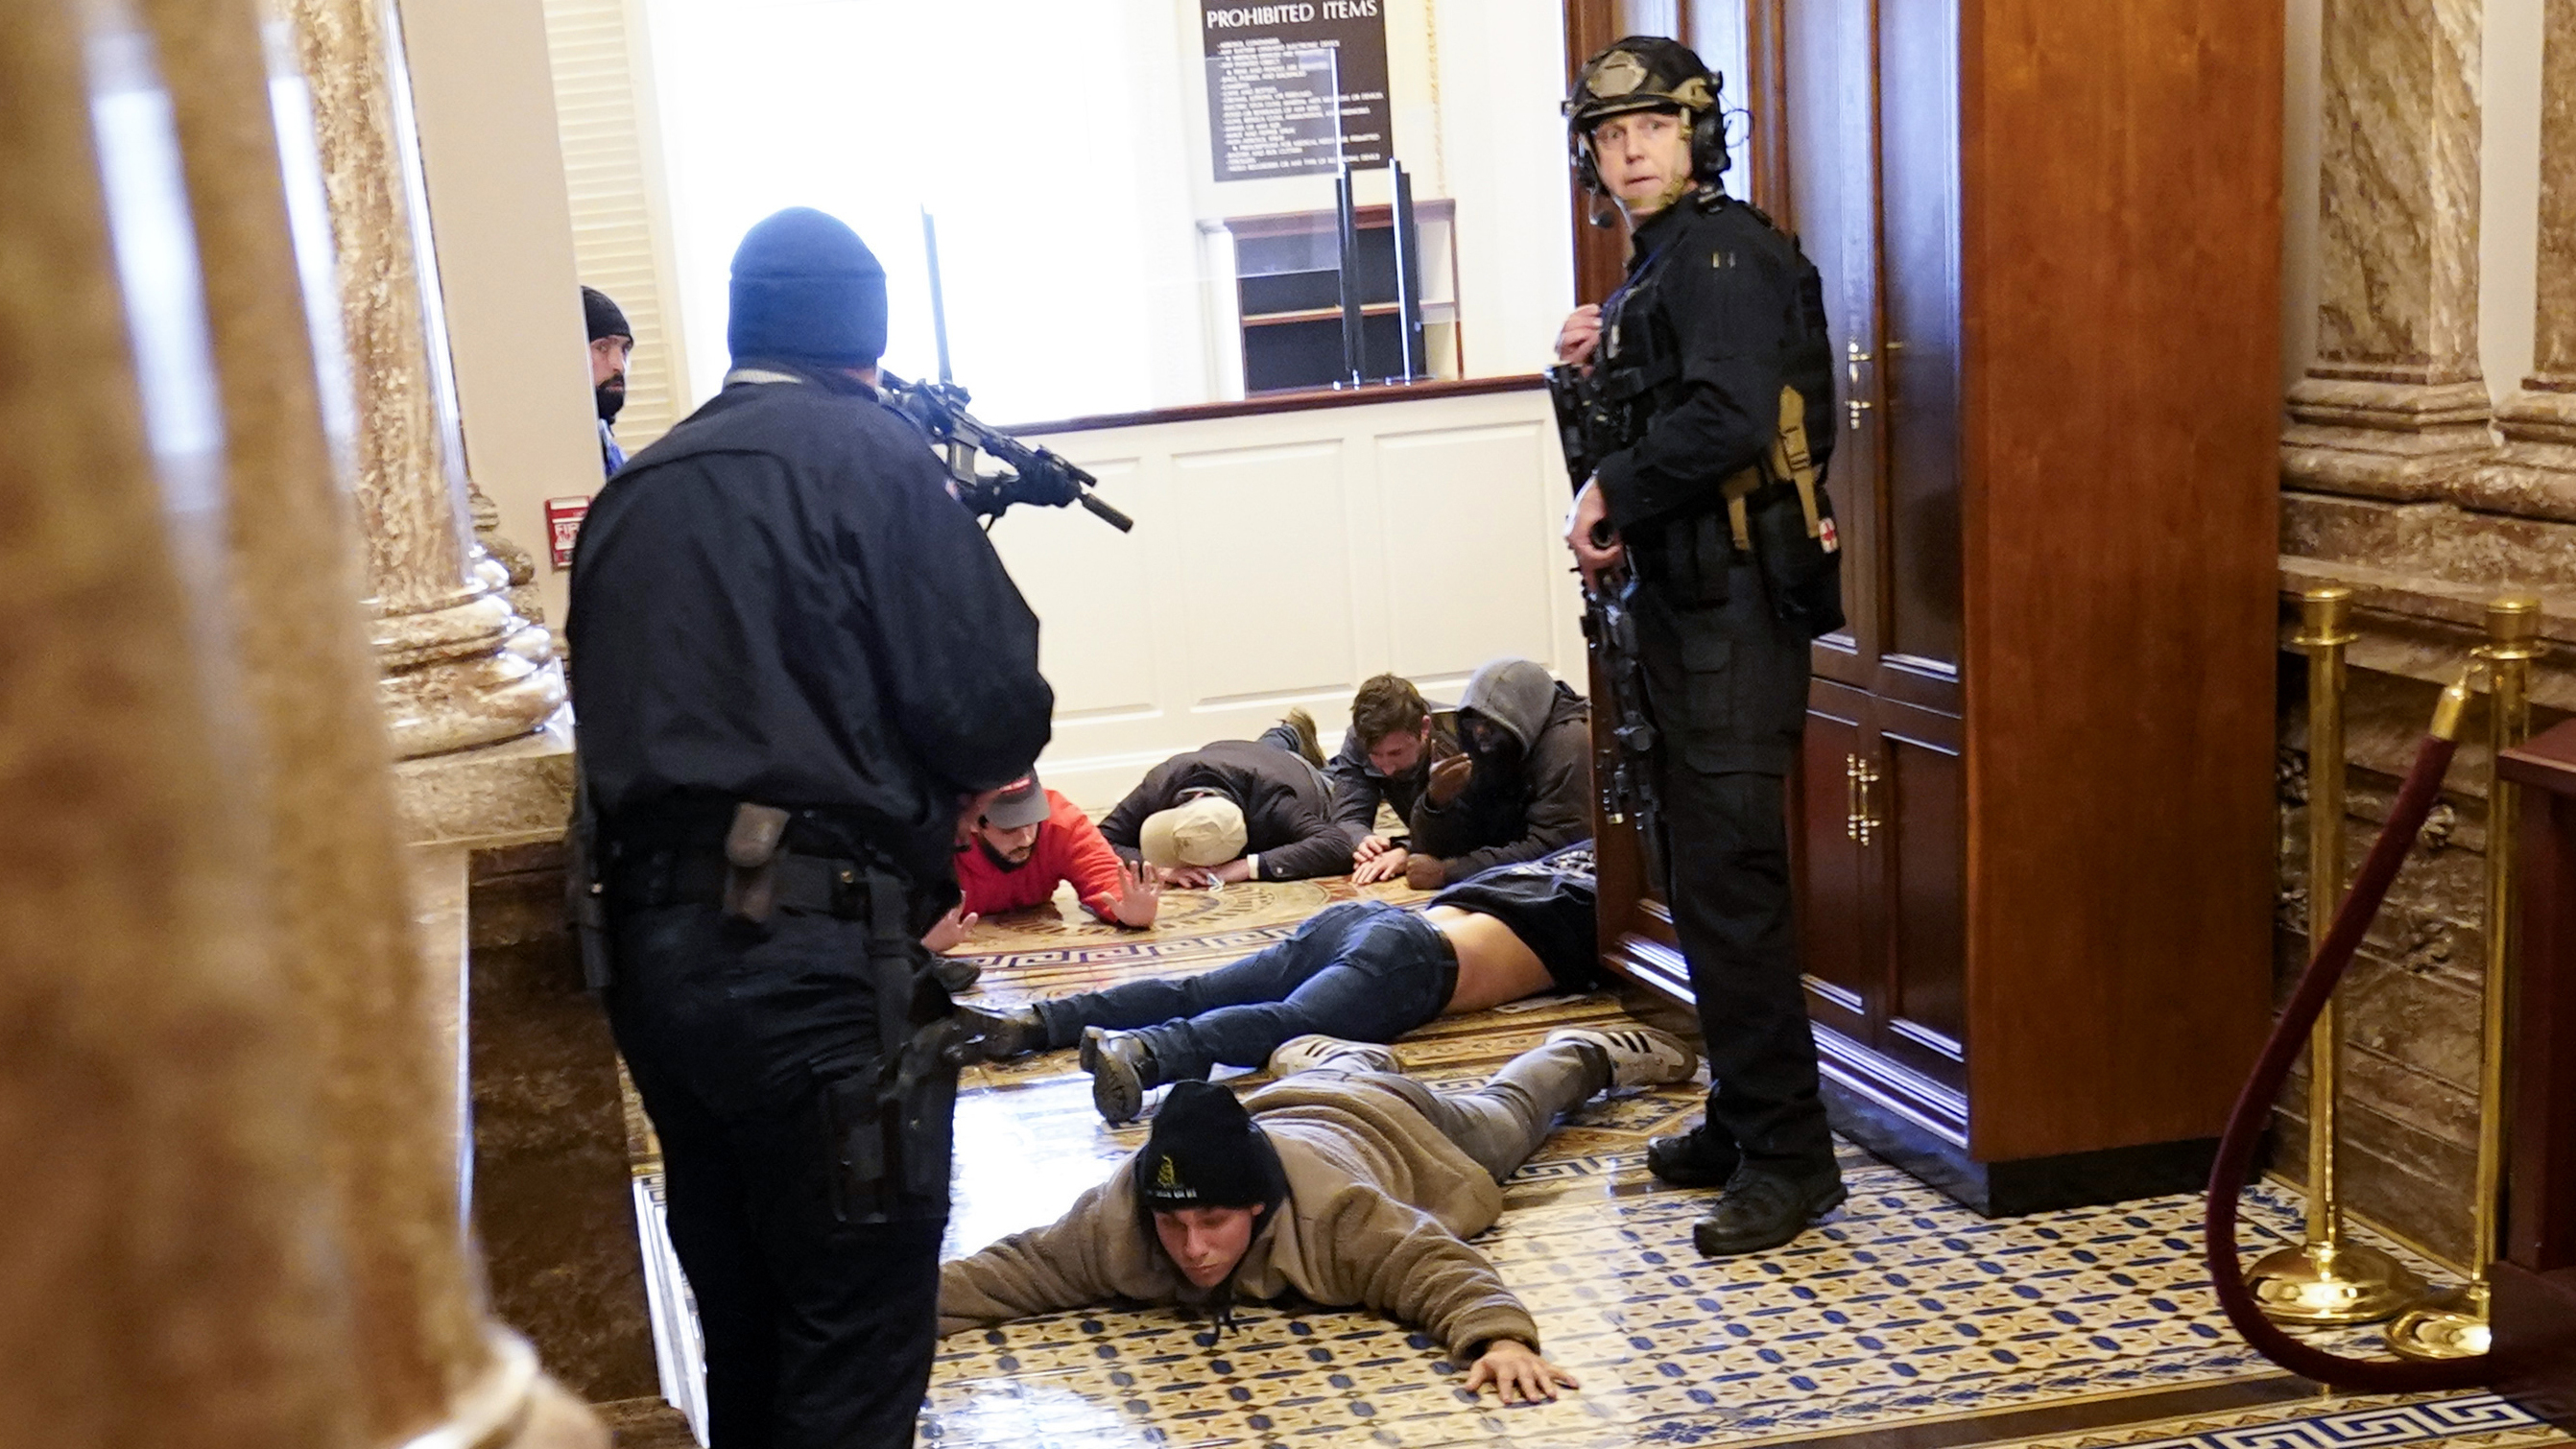 U.S. Capitol Police hold protesters at gunpoint near the House Chamber inside the U.S. Capitol on Wednesday.